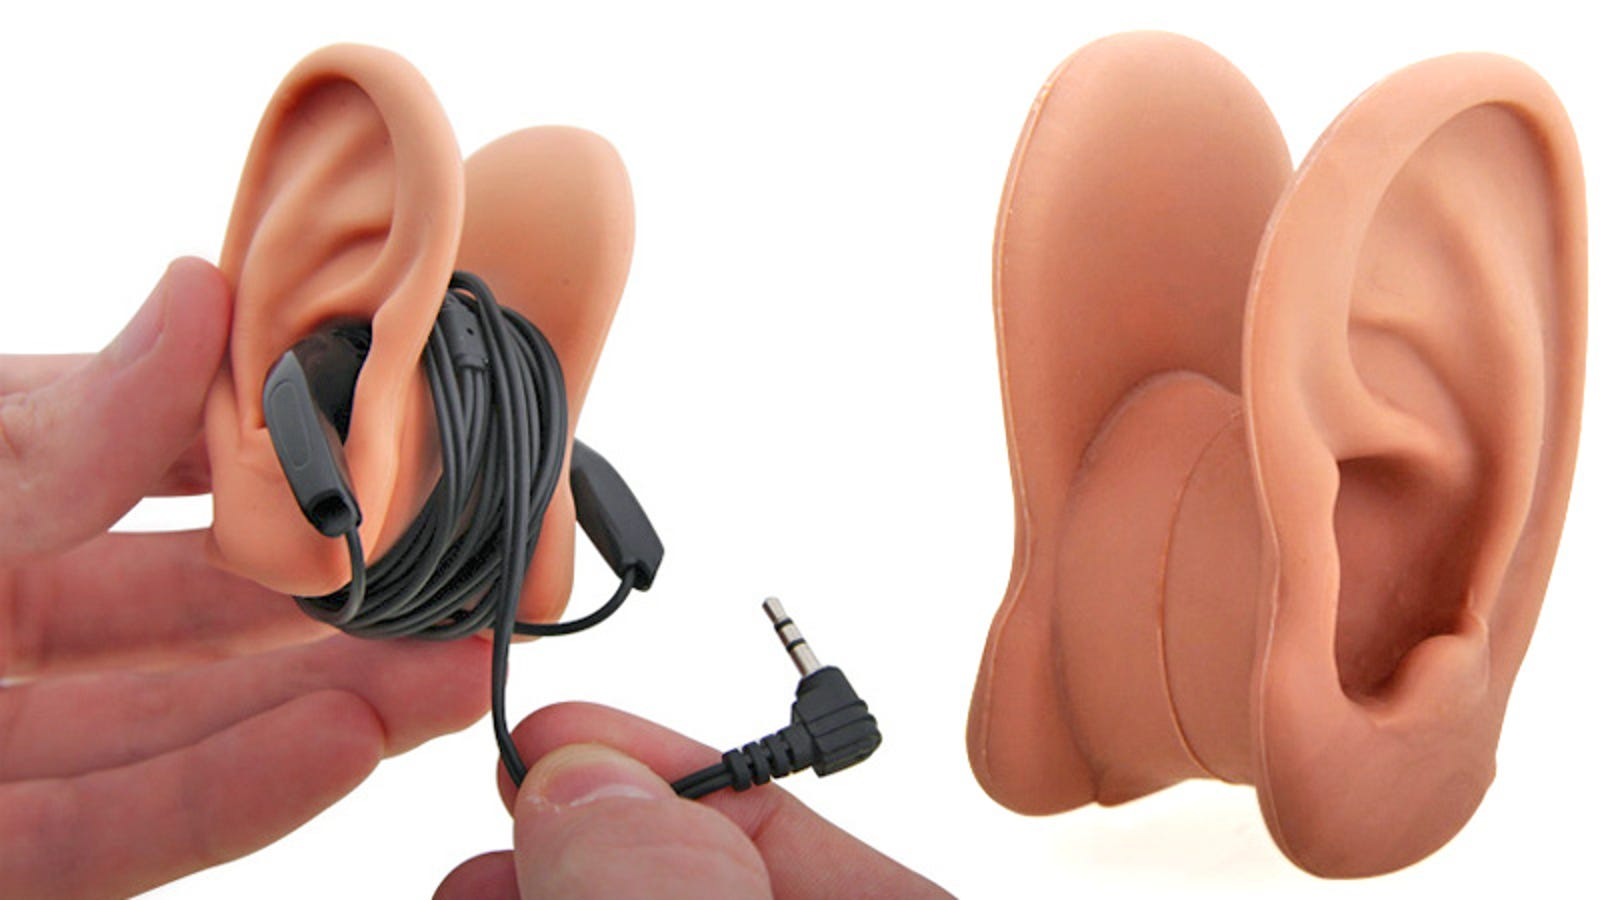 red dot earbuds - Where Better To Store Your Earbuds Than On a Pair Of Ears?